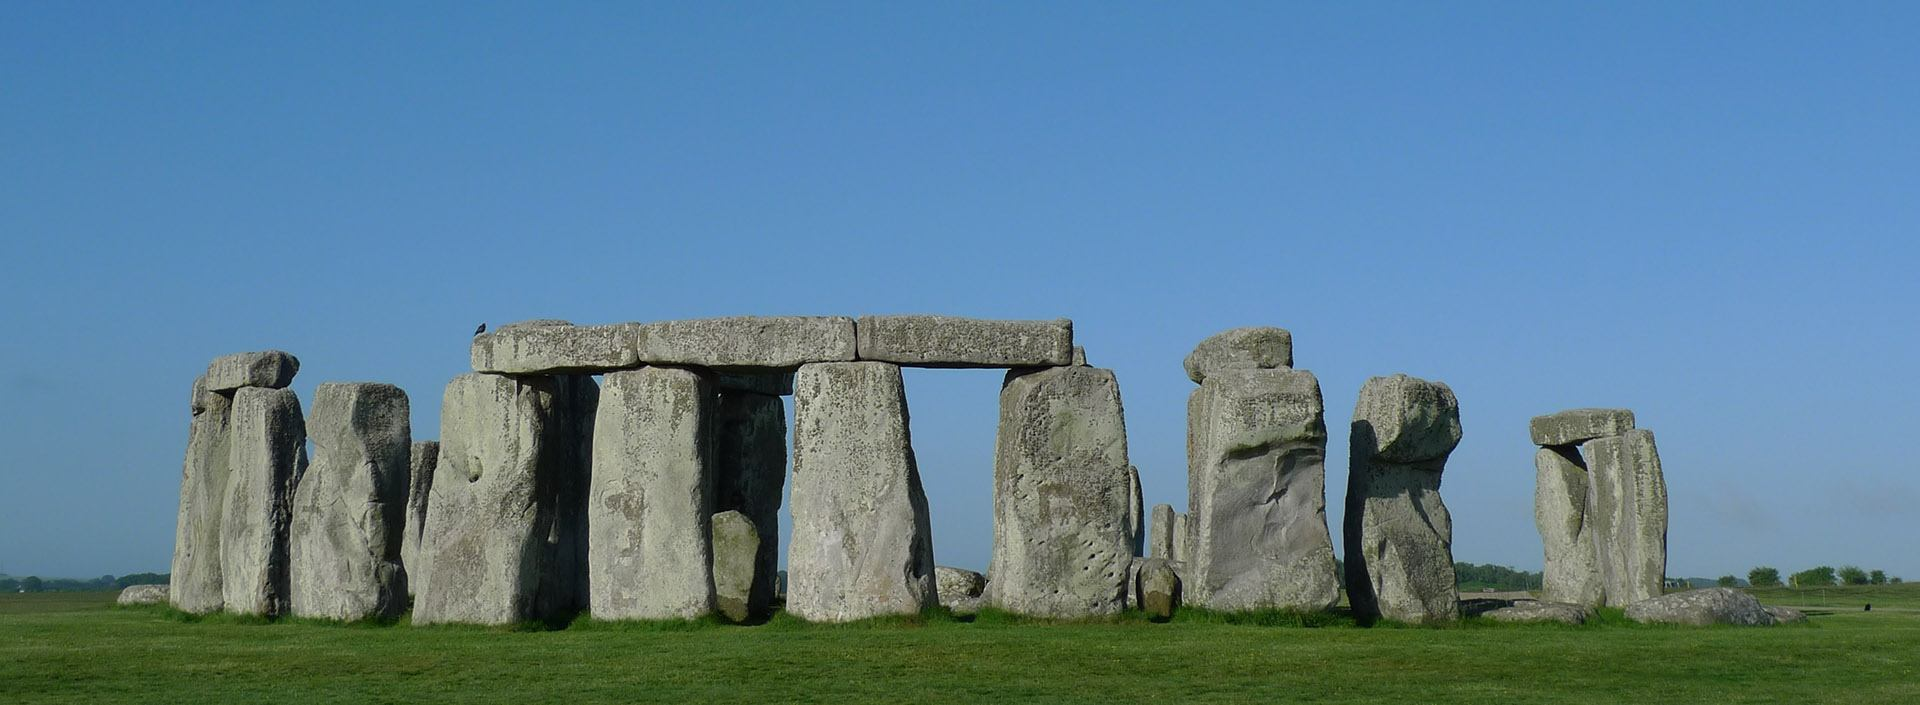 Slide 1 - Stonehenge - for software Historic Buildings, Sites and Monuments Record